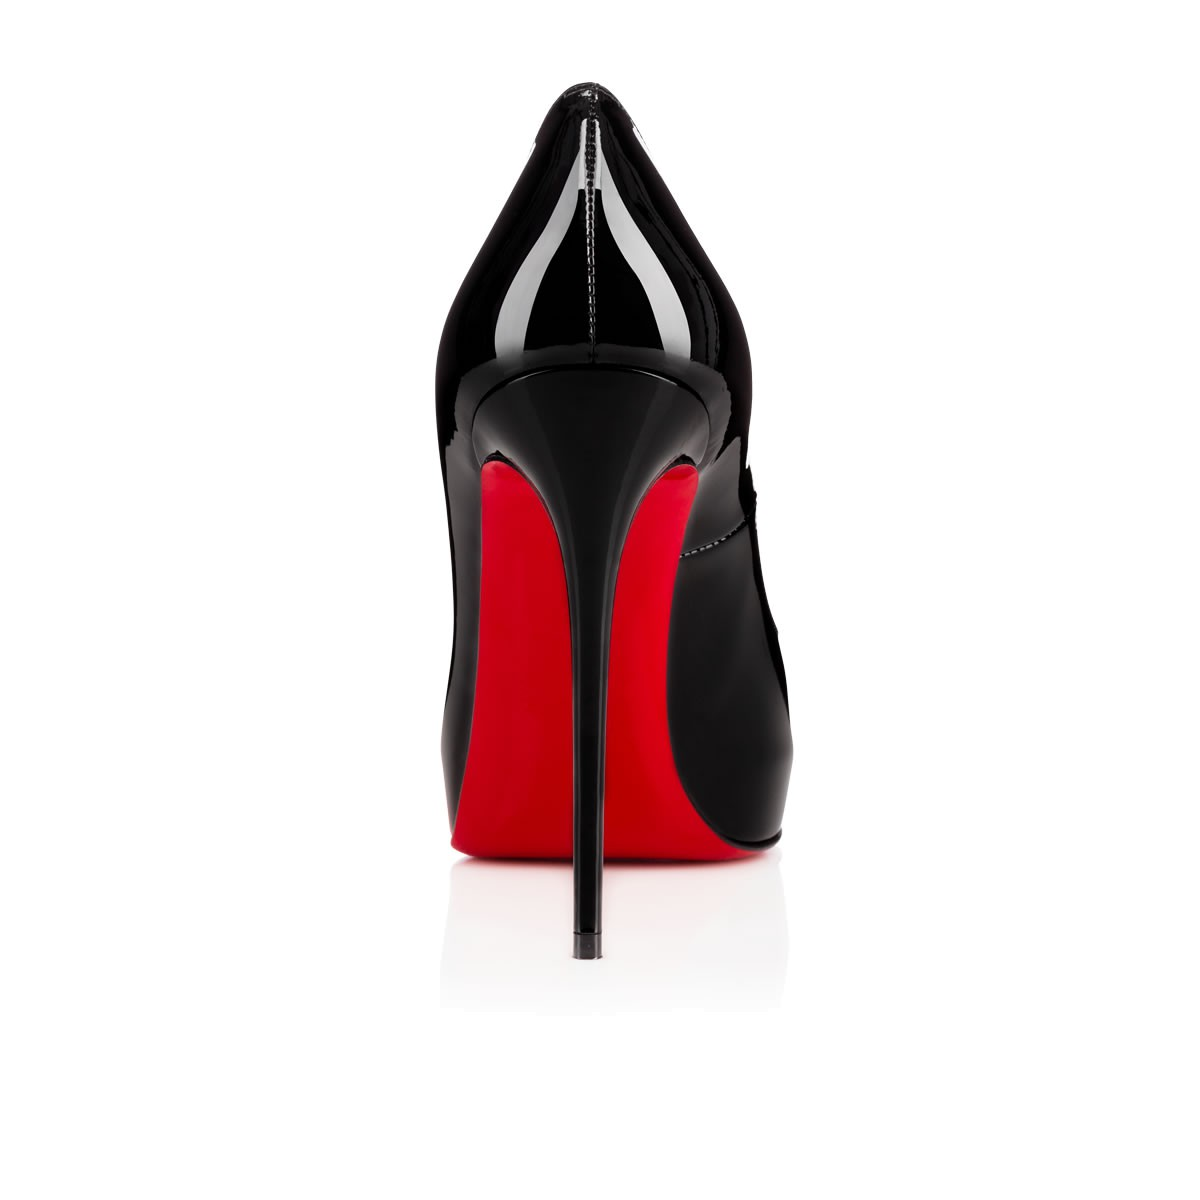 new product e9a84 0729e New Very Prive 120mm Black/Red Patent Leather